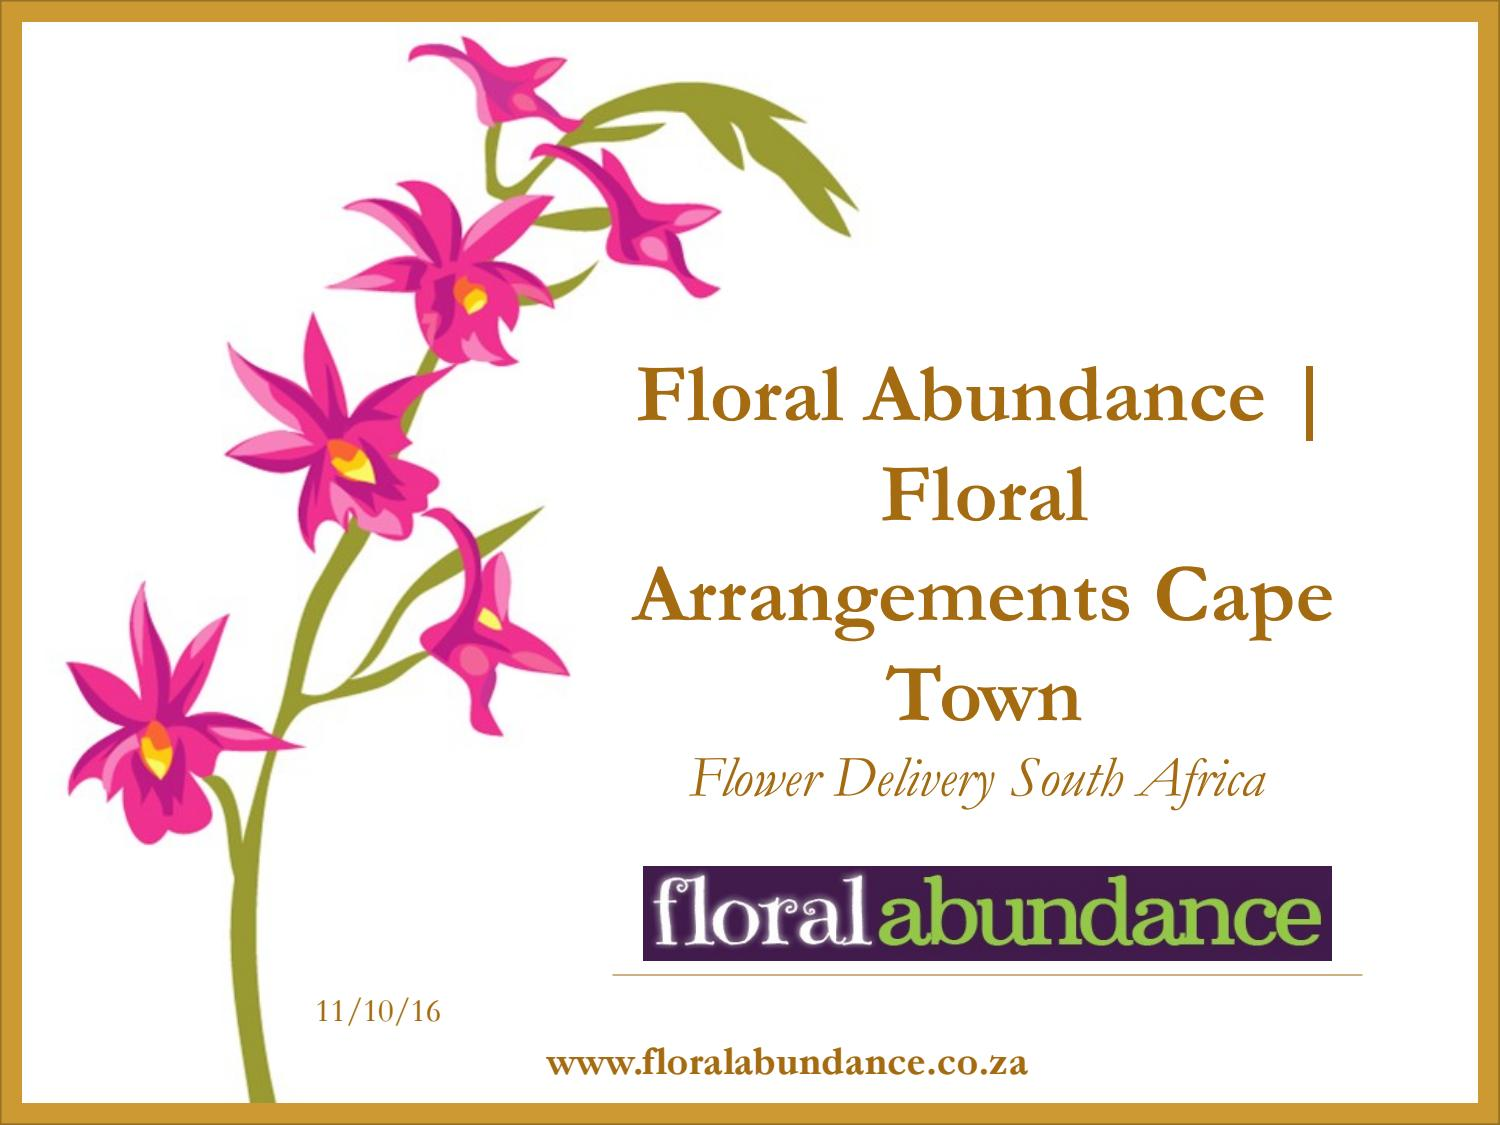 Cape Town Johannesburg Durban South Africa Philadelphia Florist Flower Delivery By Market Unique Flowers And Gifts The Best Ideas